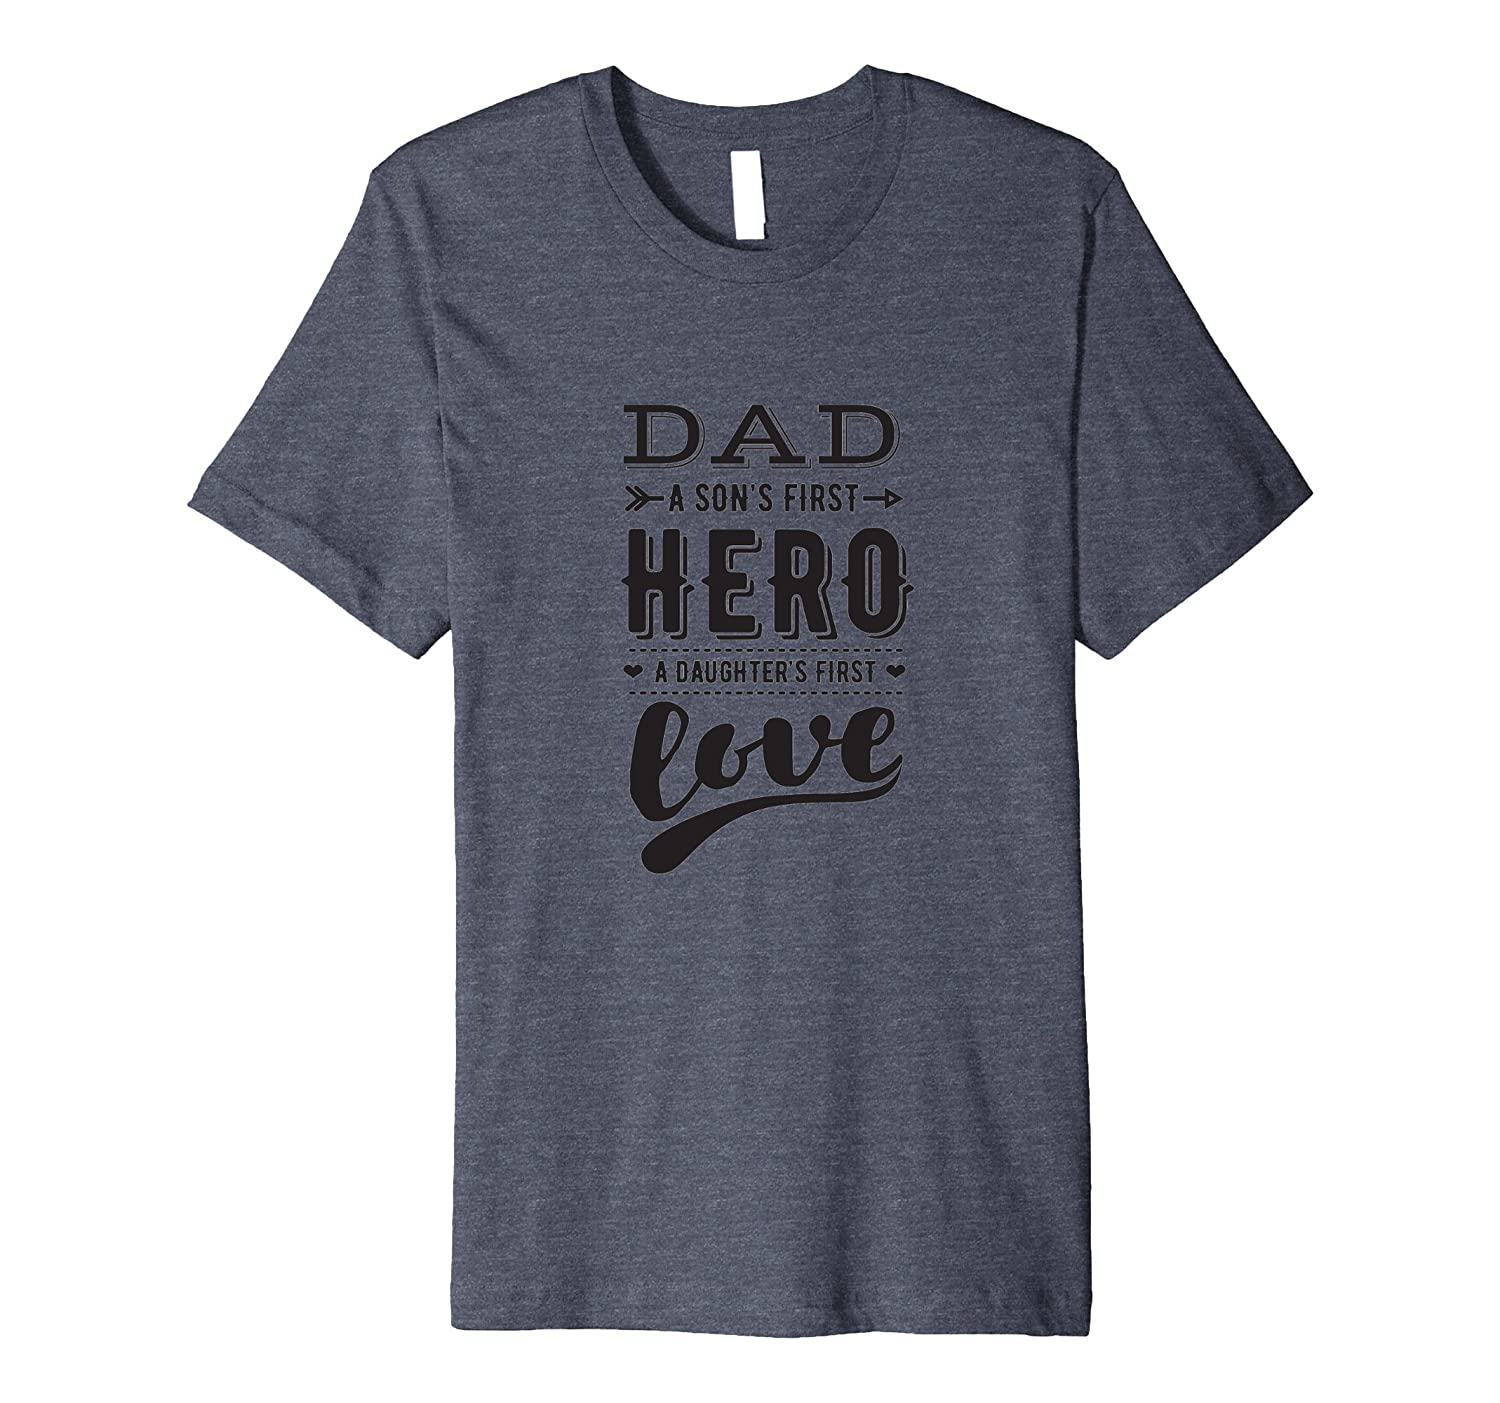 Mens Dad a son's first hero, a daughter's first love T-shirt